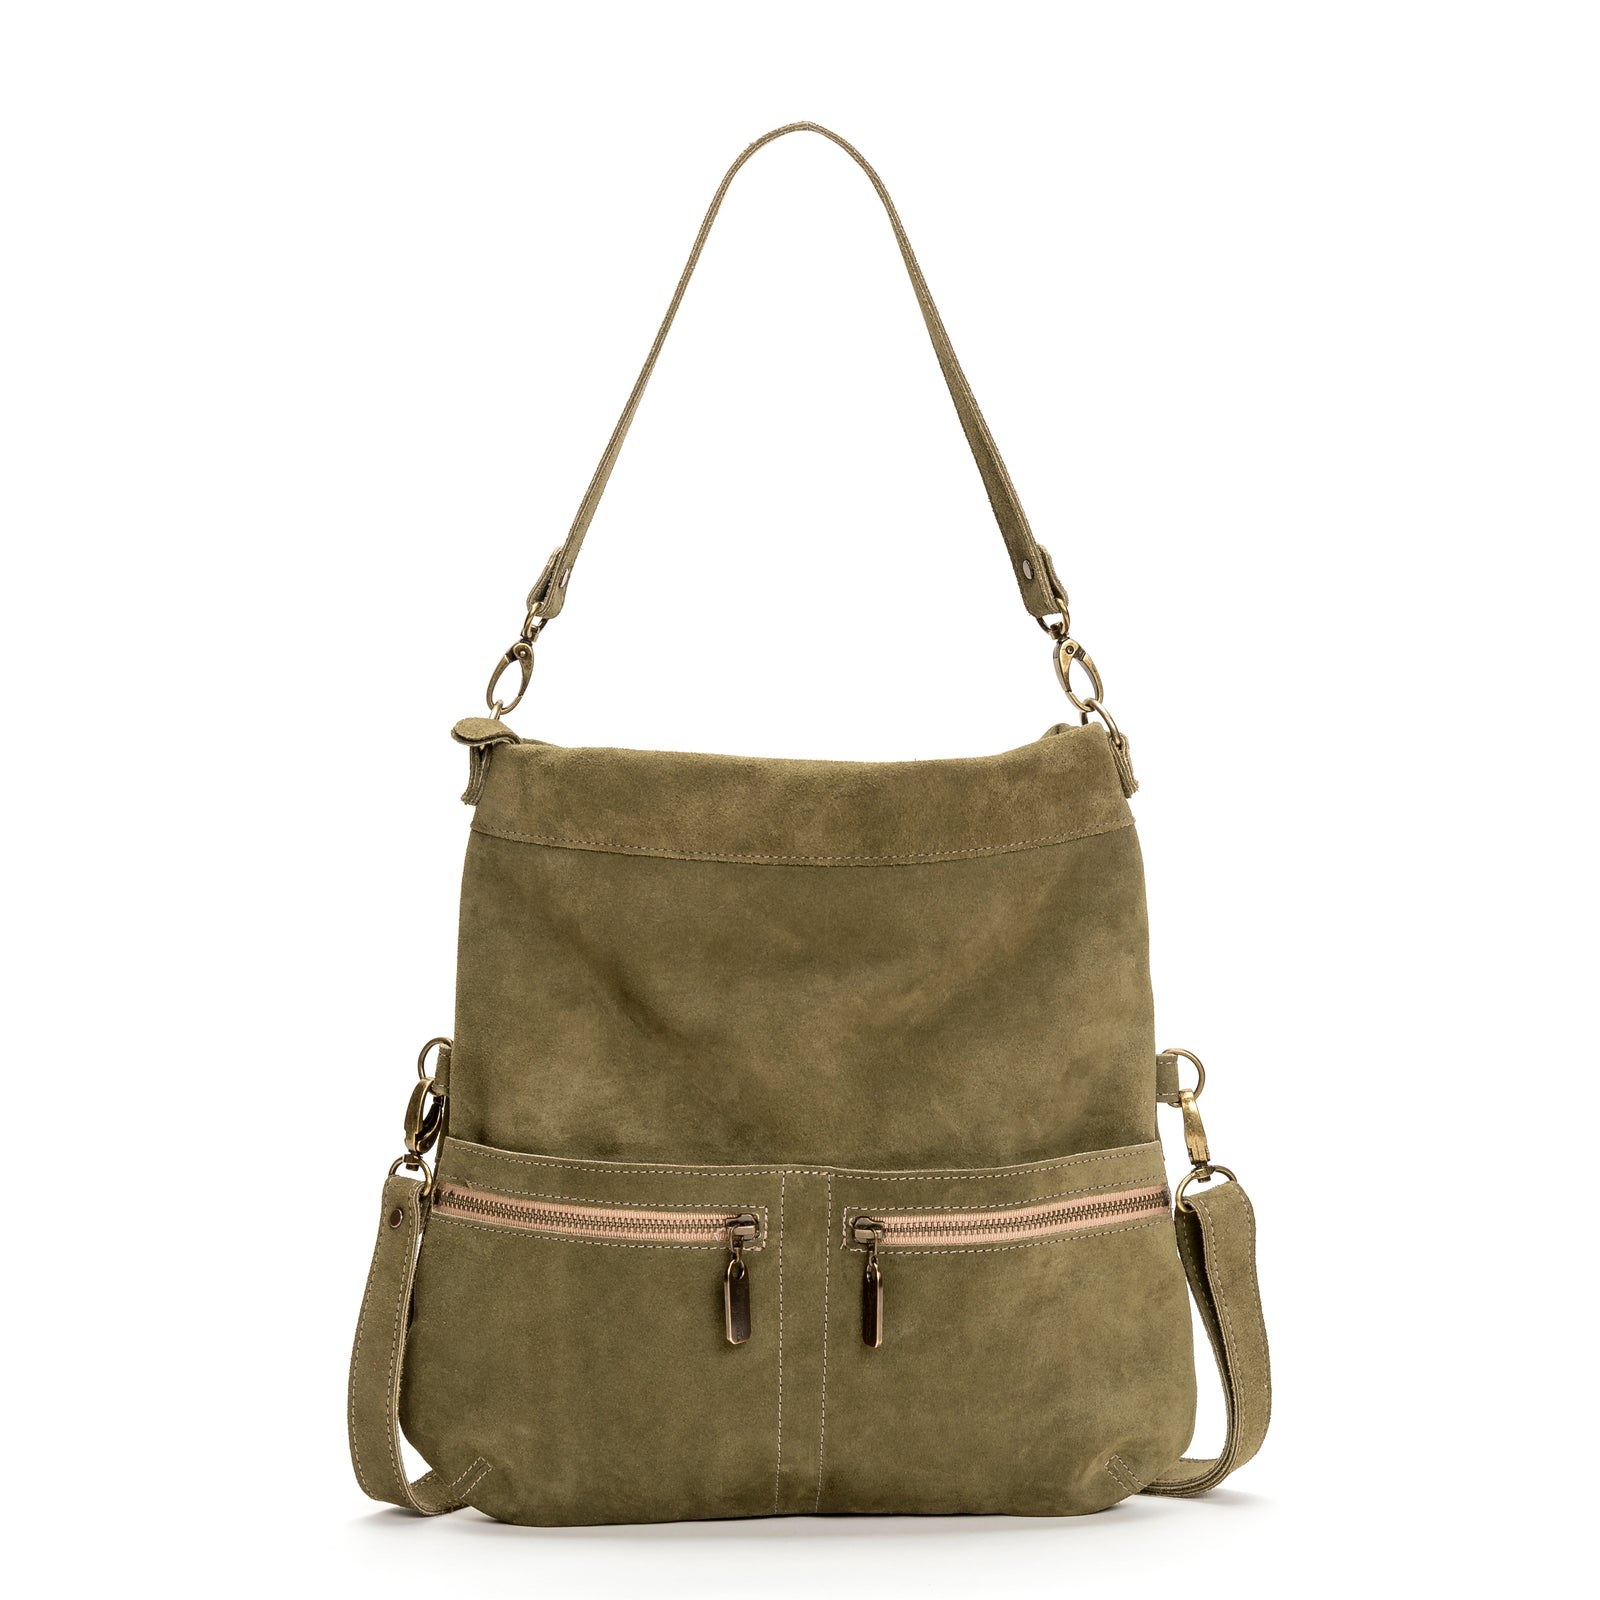 Mini-Lauren Crossbody - Greenwich - Brynn Capella, Medium Crossbody